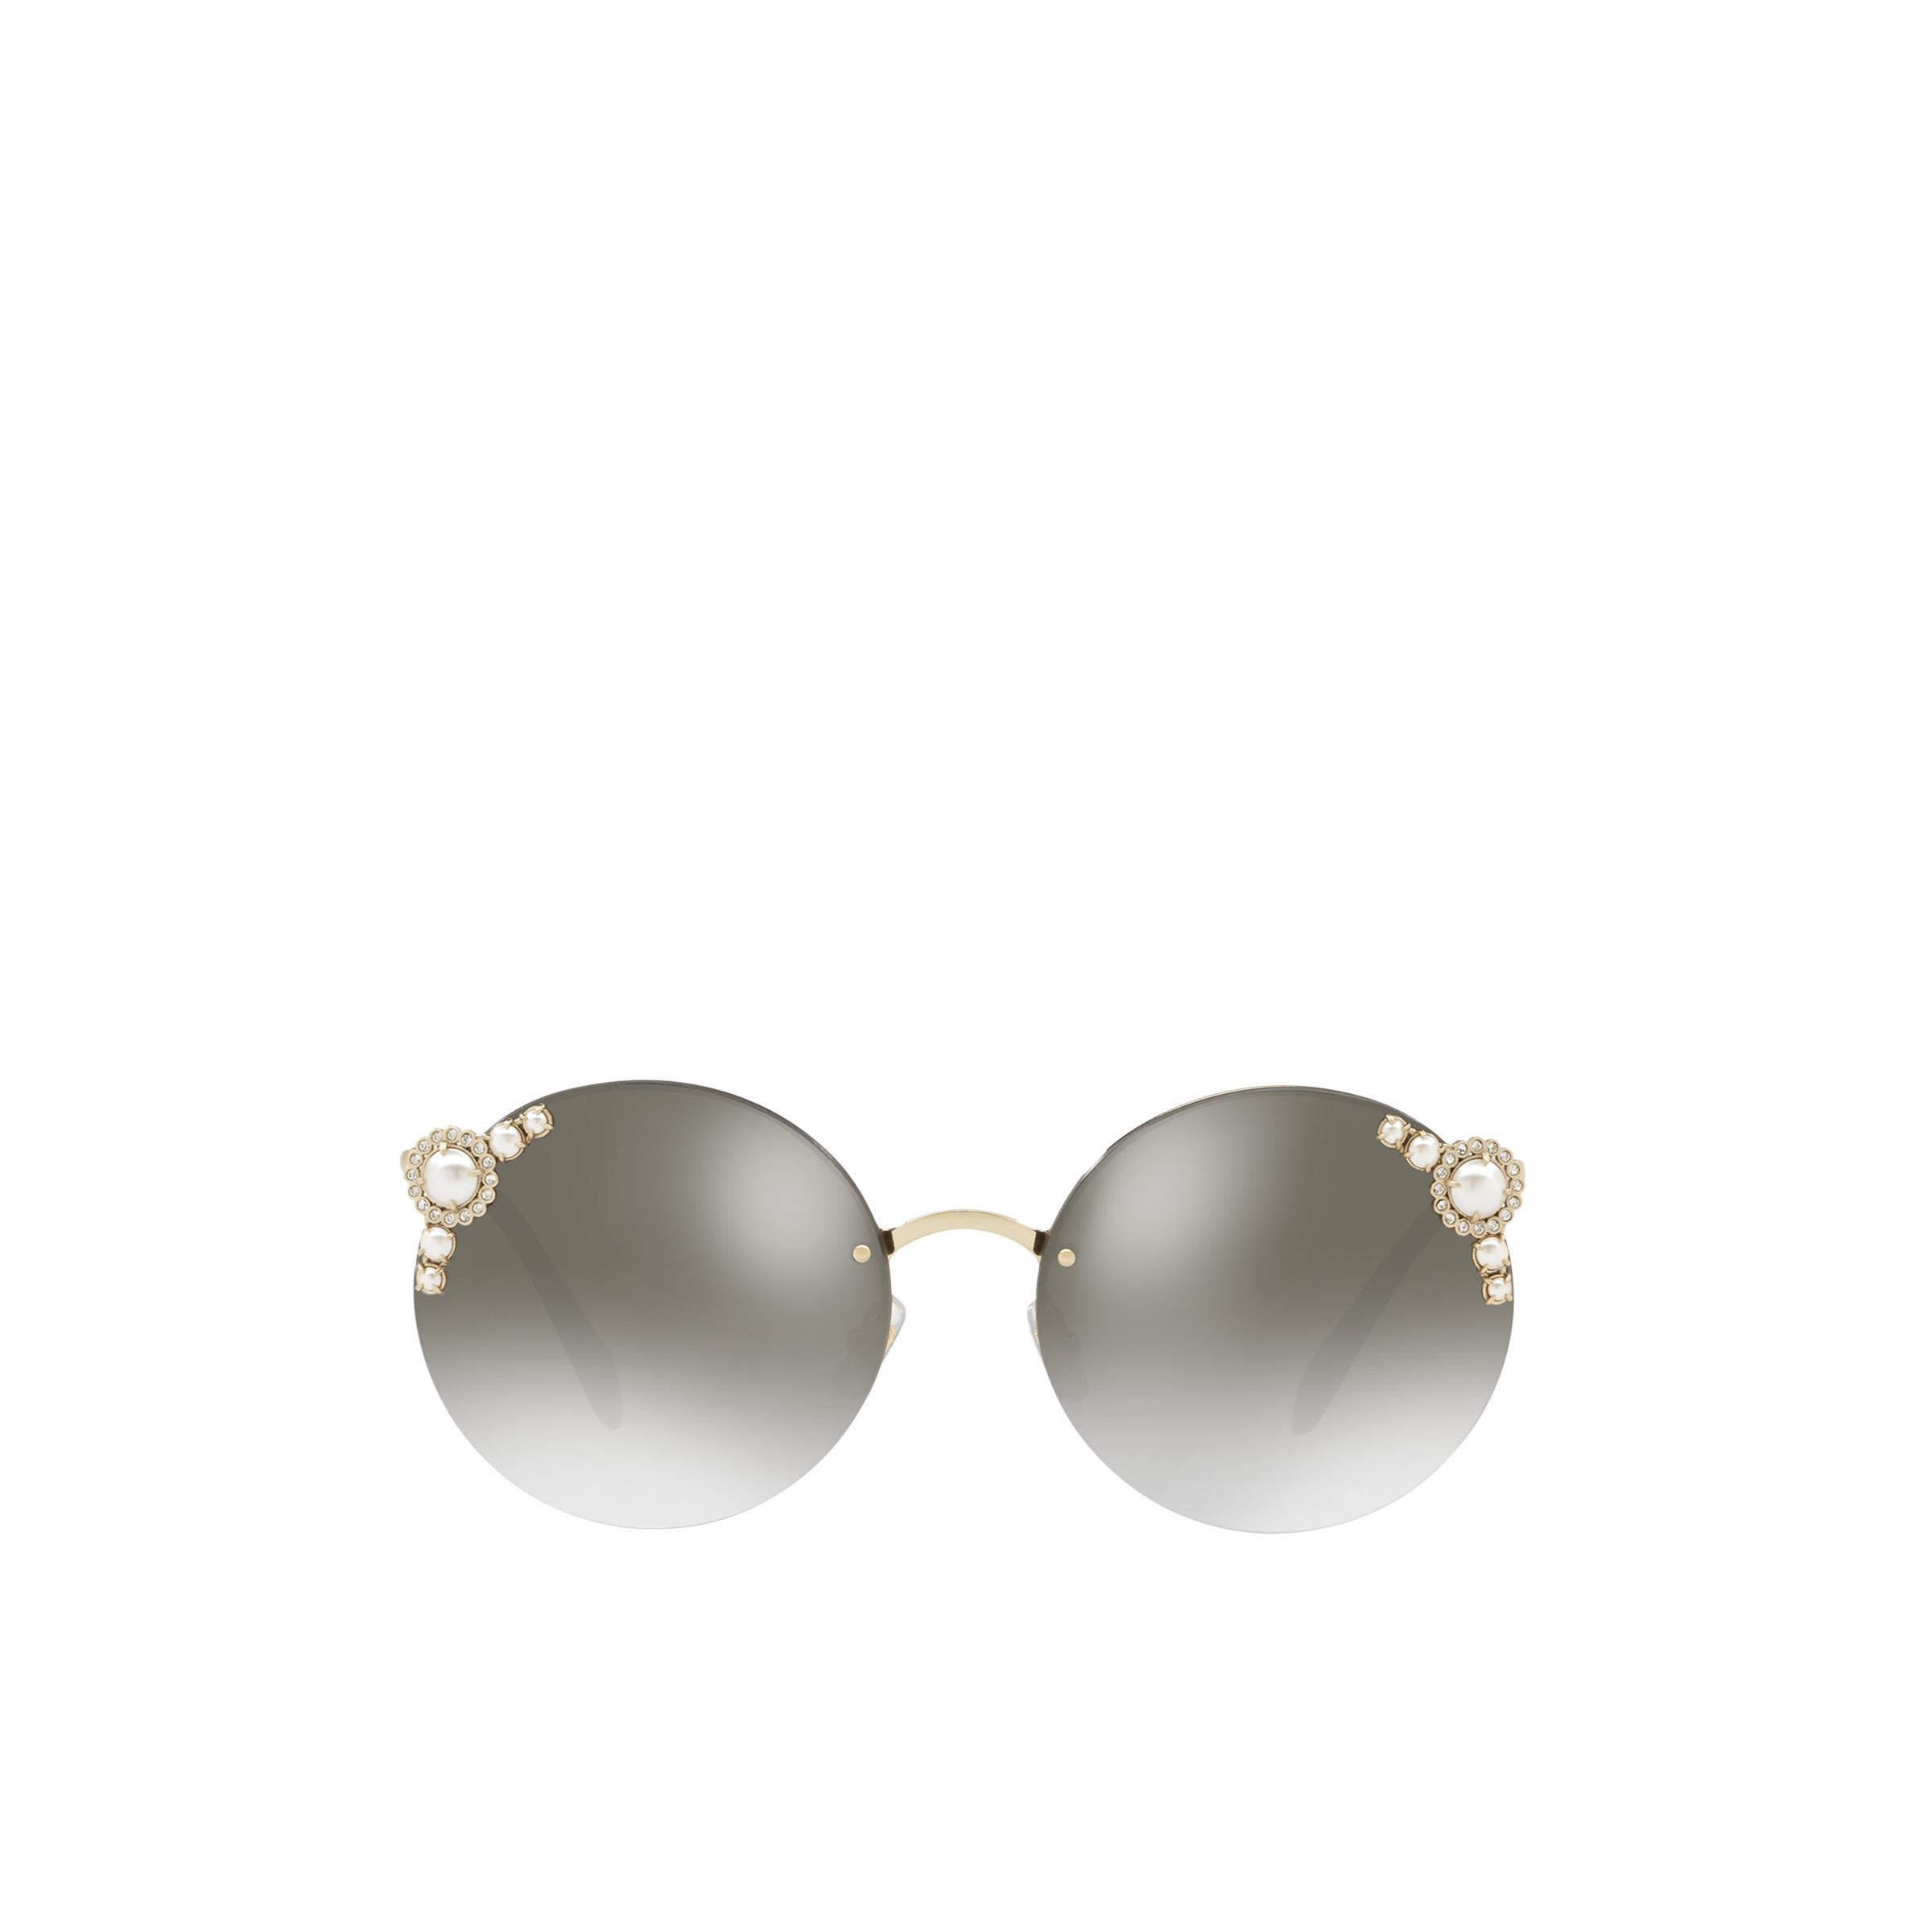 Manière Eyewear With Pearls Women Anthracite Gray To Lake Blue Gradient Lenses With Silver Mirror Finish